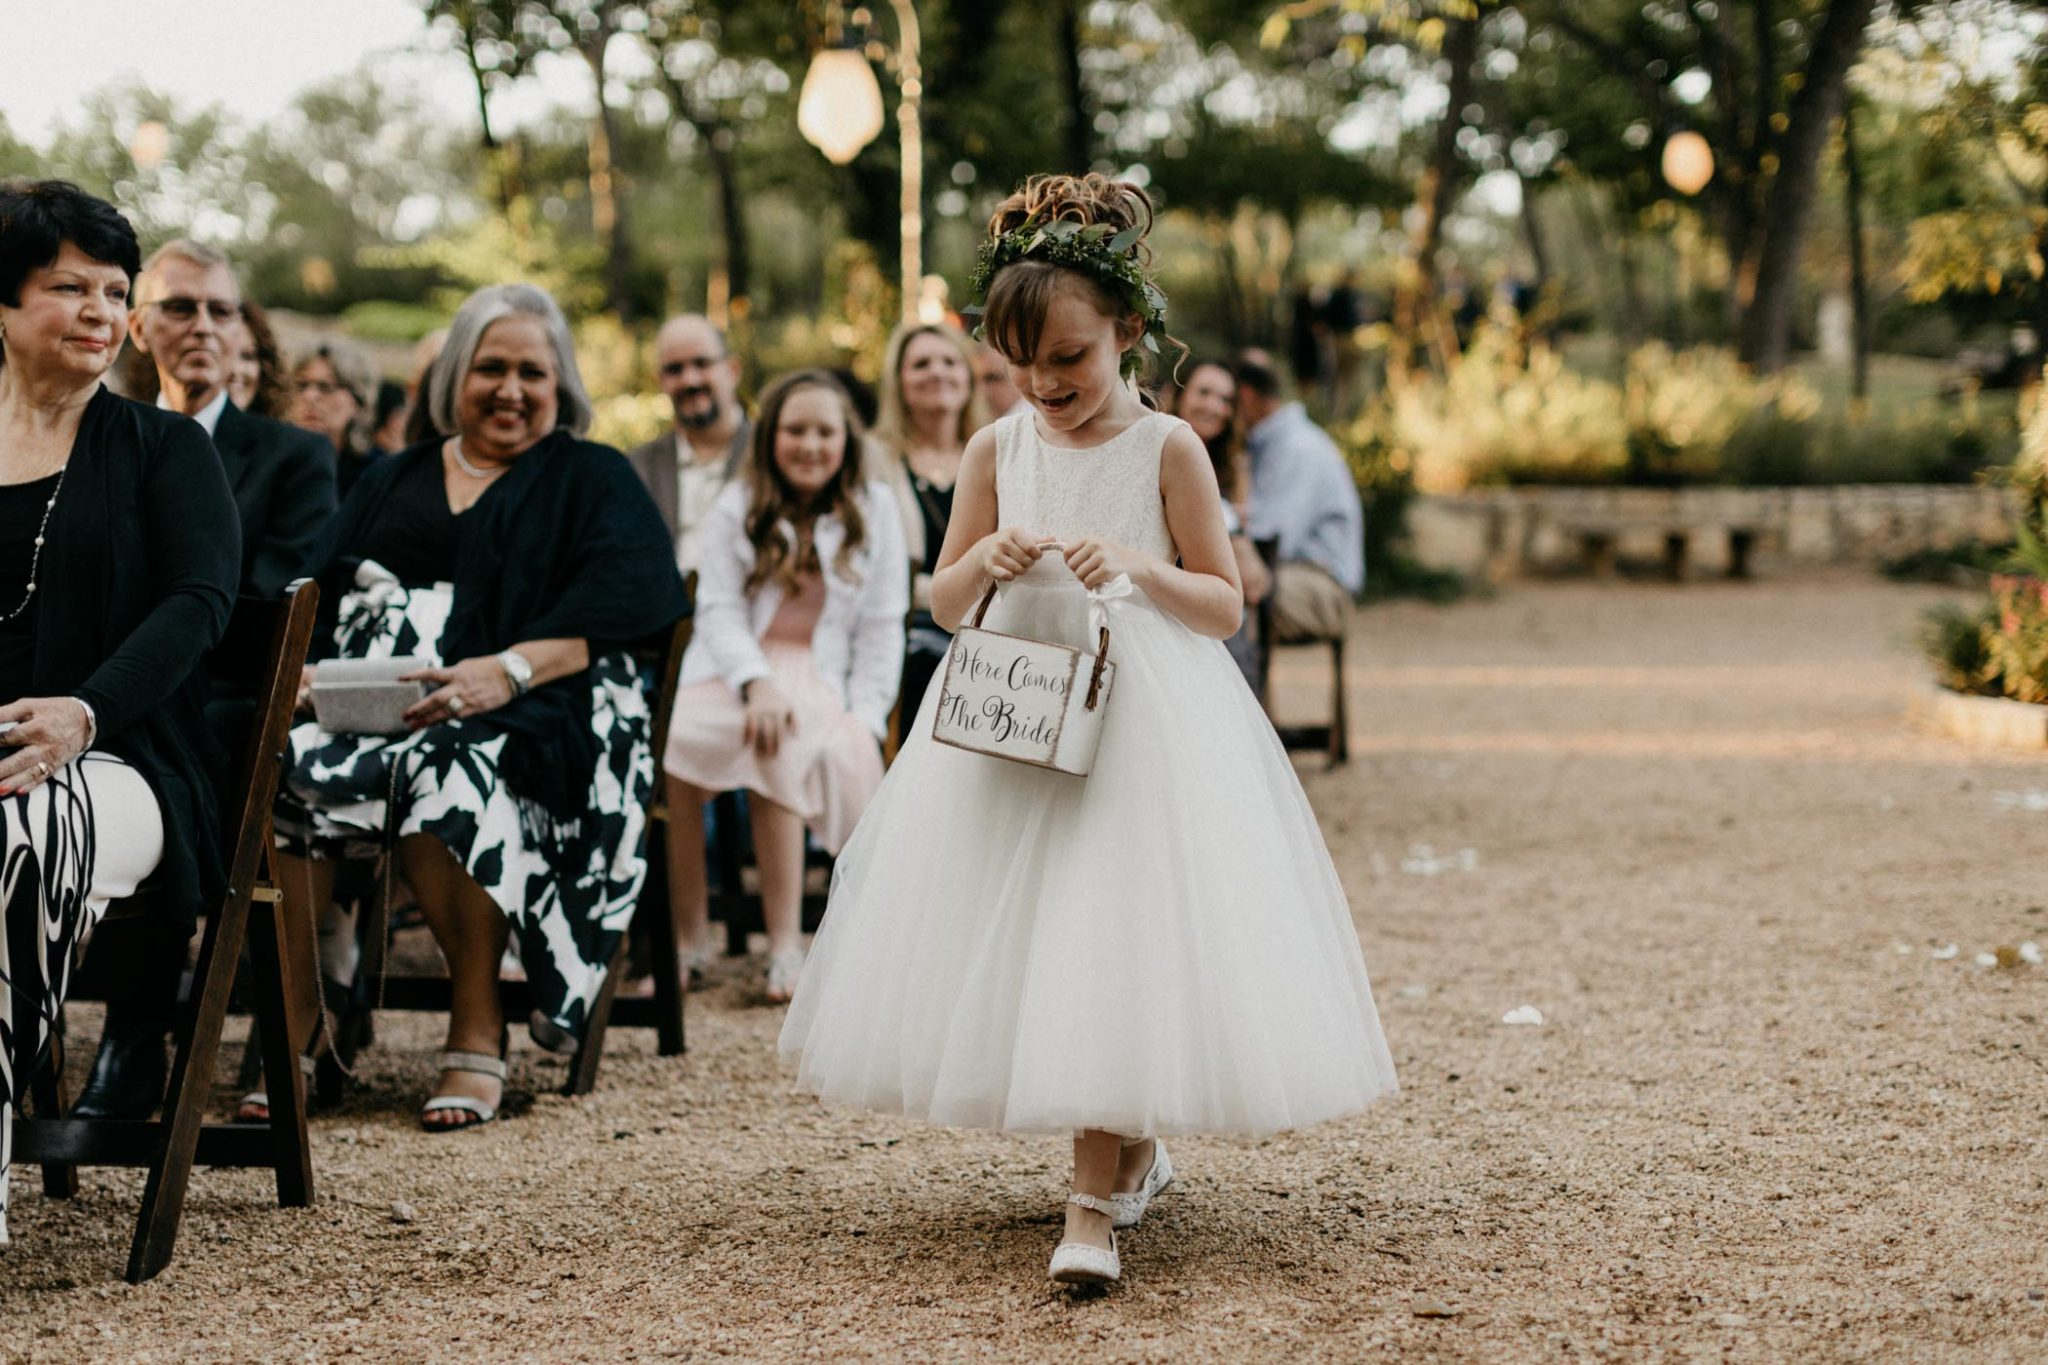 adorable flower girl walking down the aisle of an elegant outdoor wedding ceremony